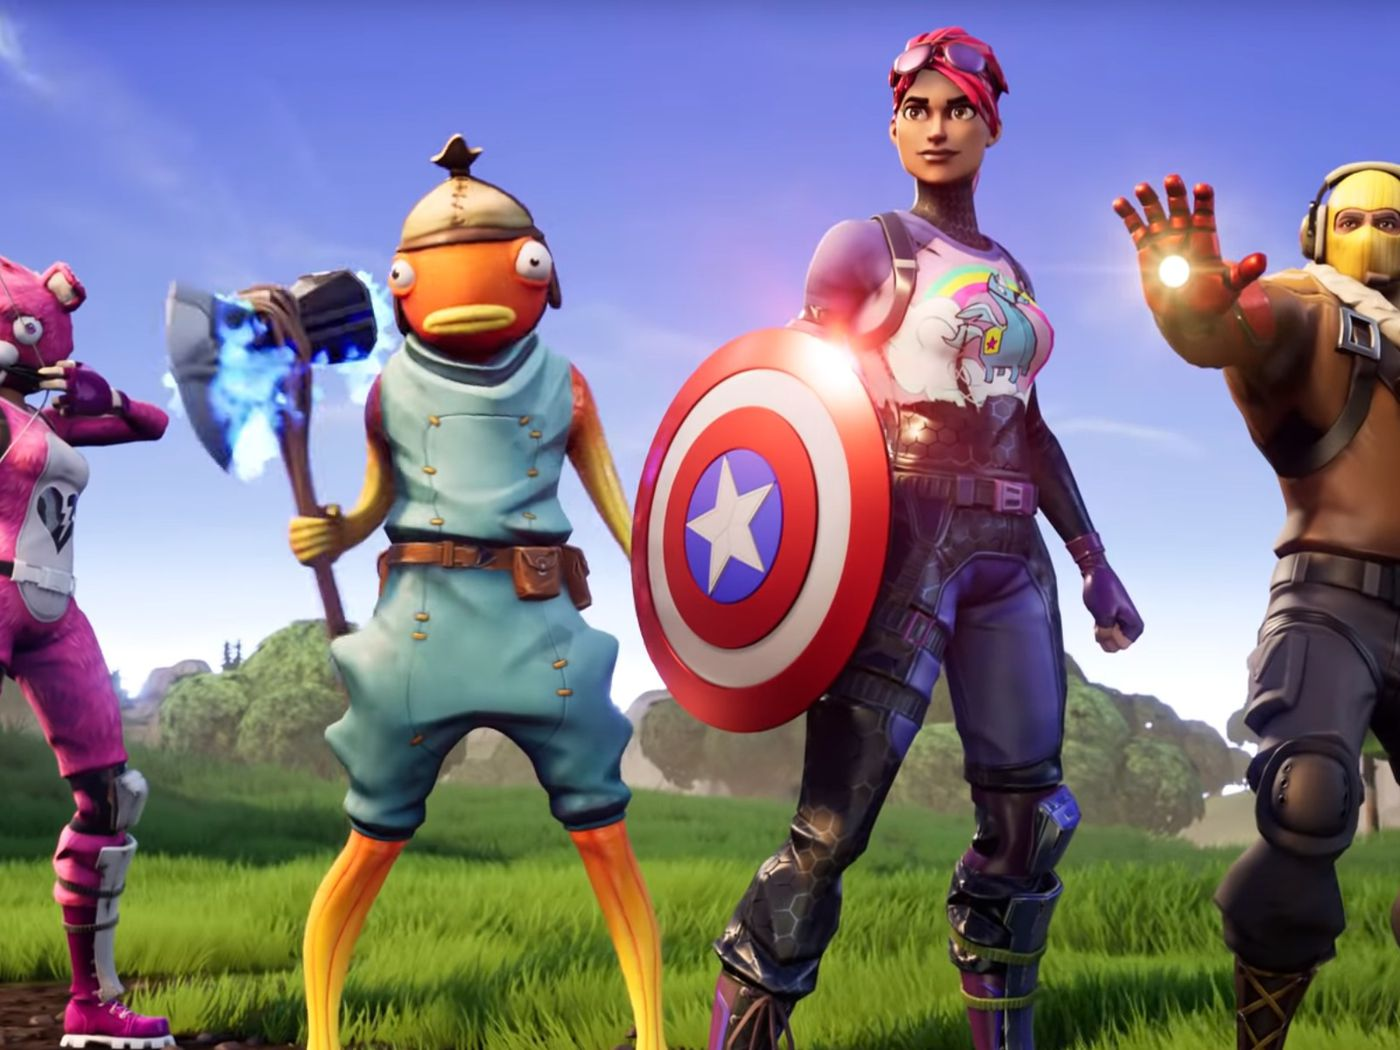 Fortnite S Avengers Endgame Mode Is Now Live With Patch 8 50 Polygon